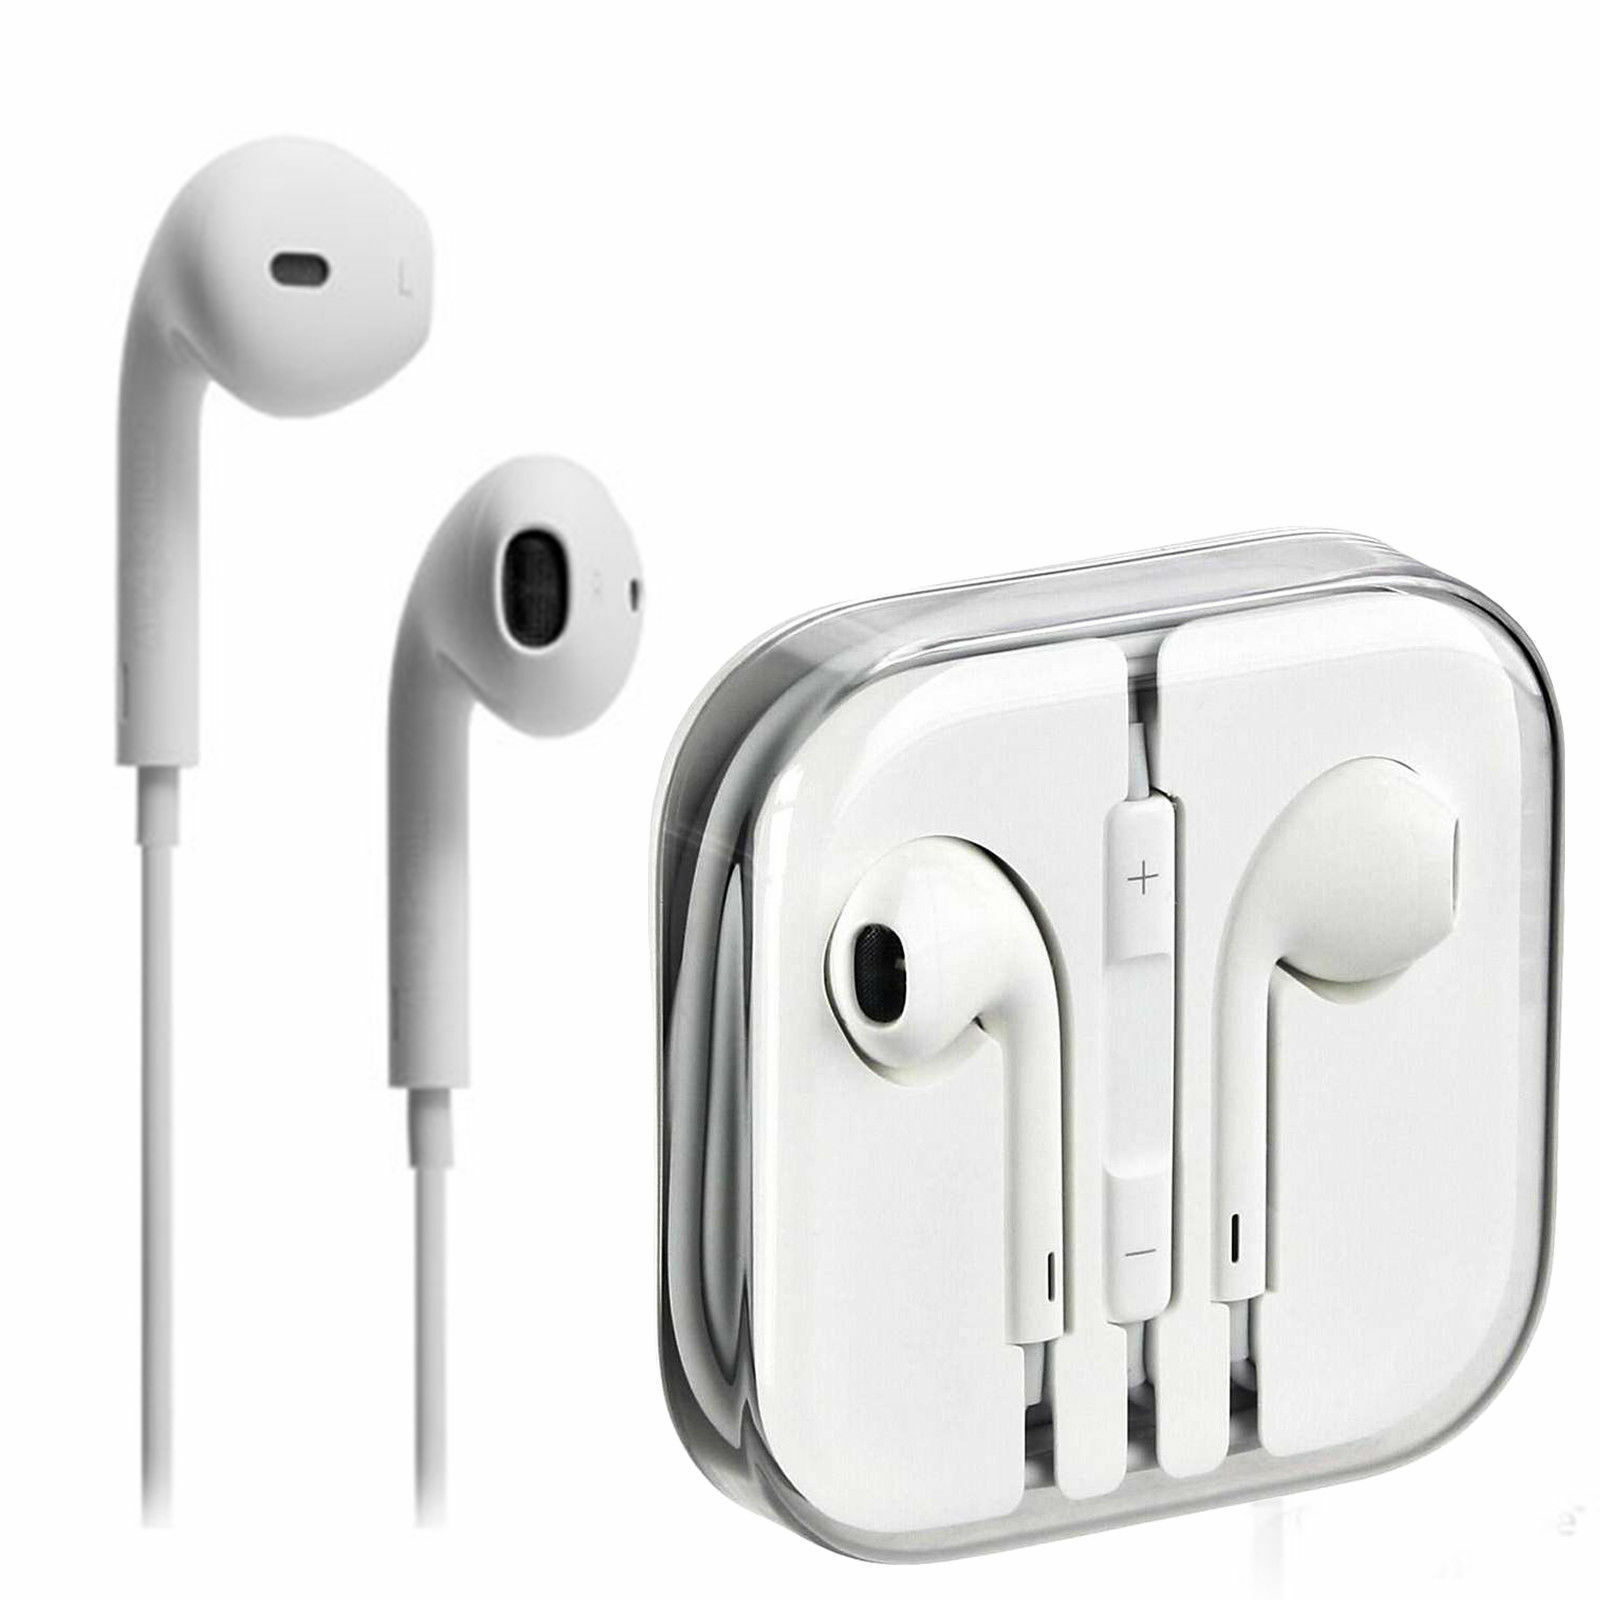 2PCS Auriculares Earphones EarBuds For iPhone 4 5 6 Micropho